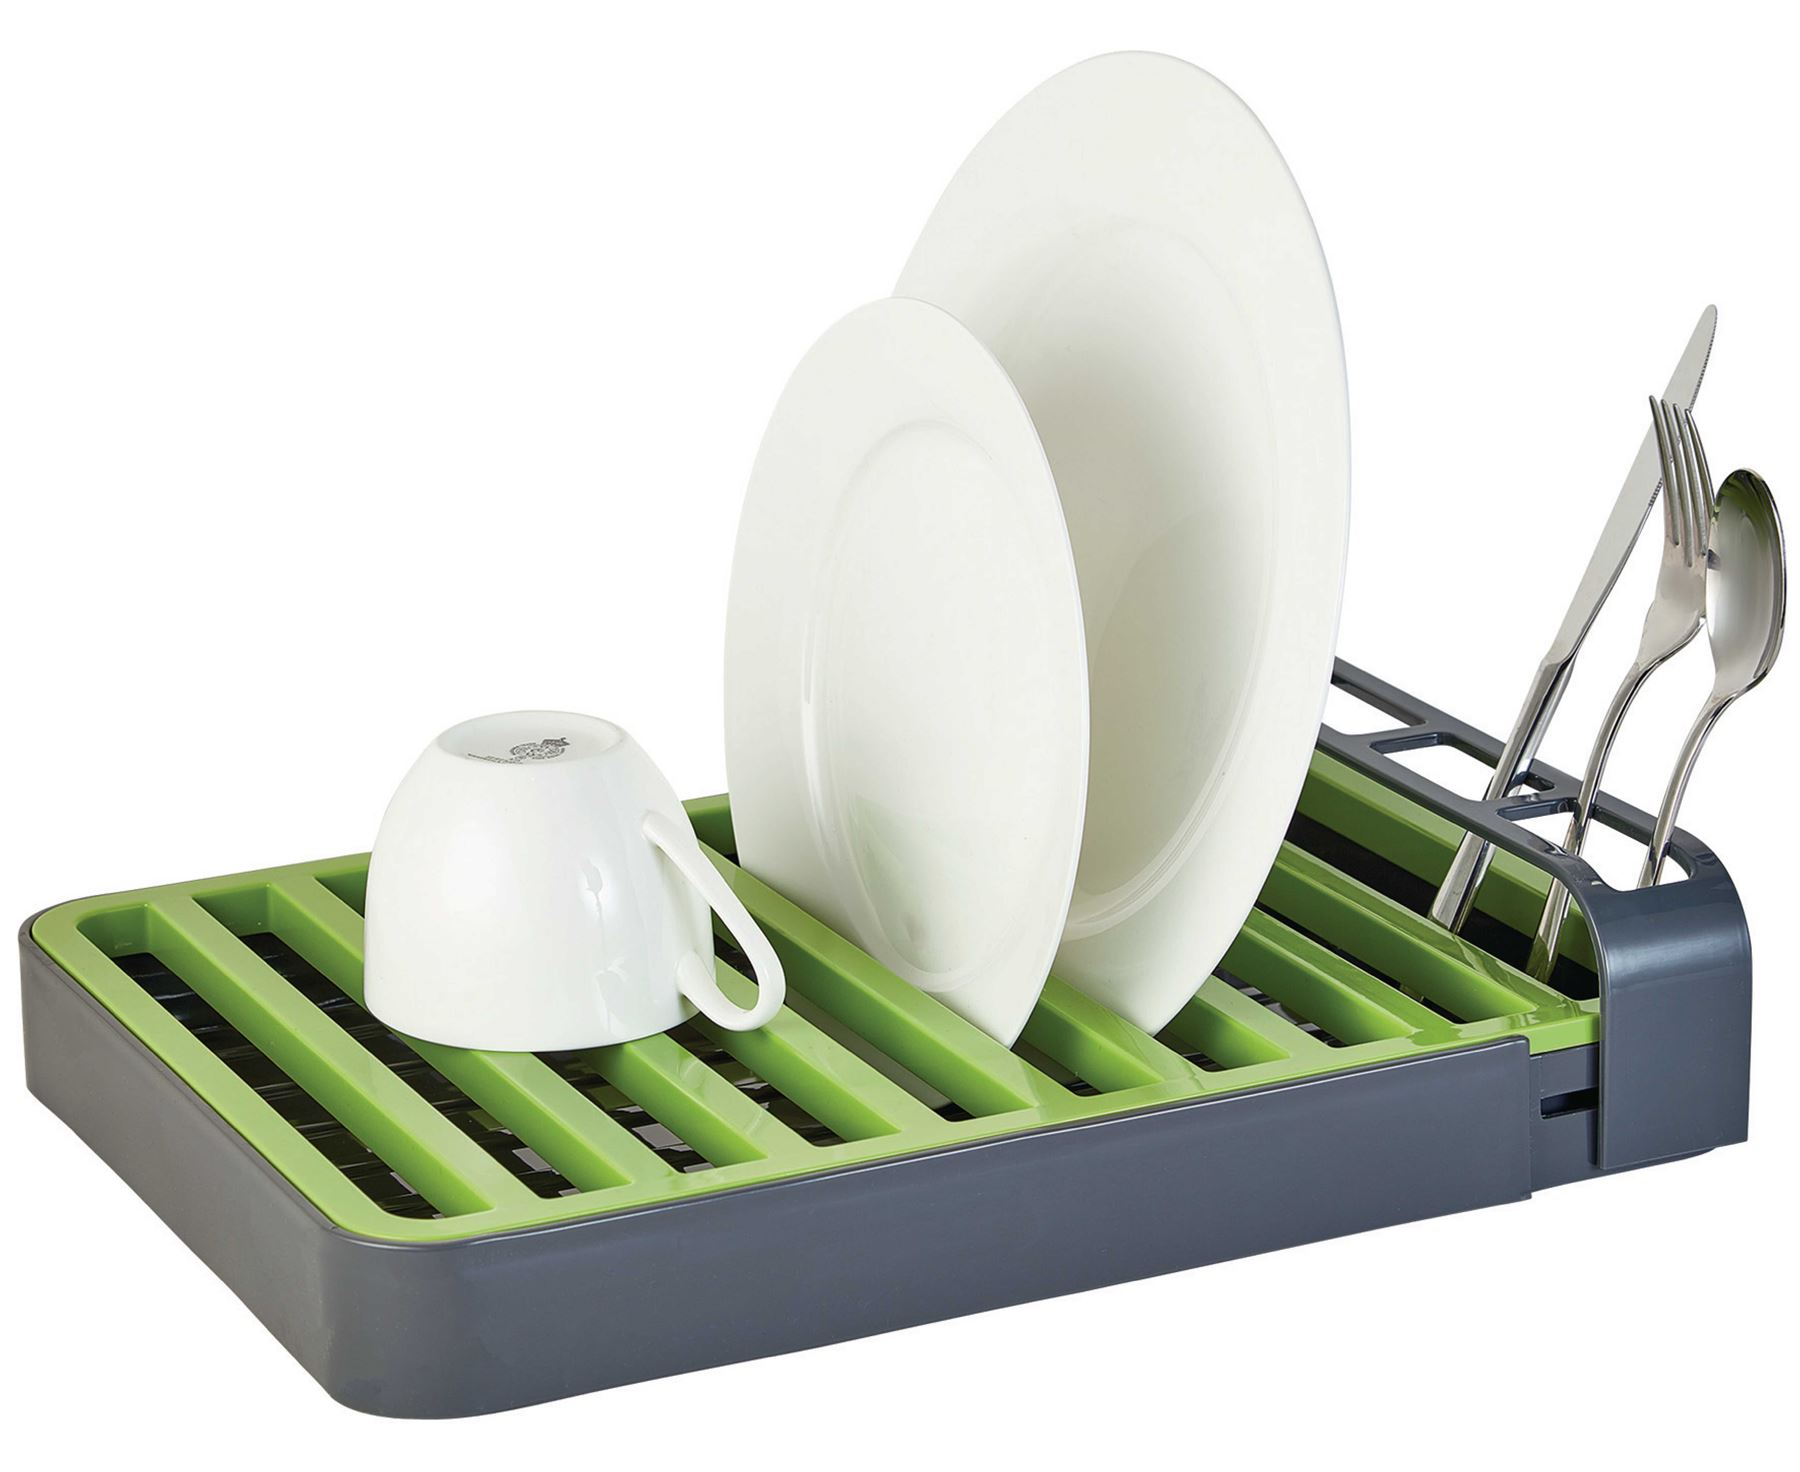 Dish Drainer Drying Rack Cutlery Holder Removable Drip Plate Tray